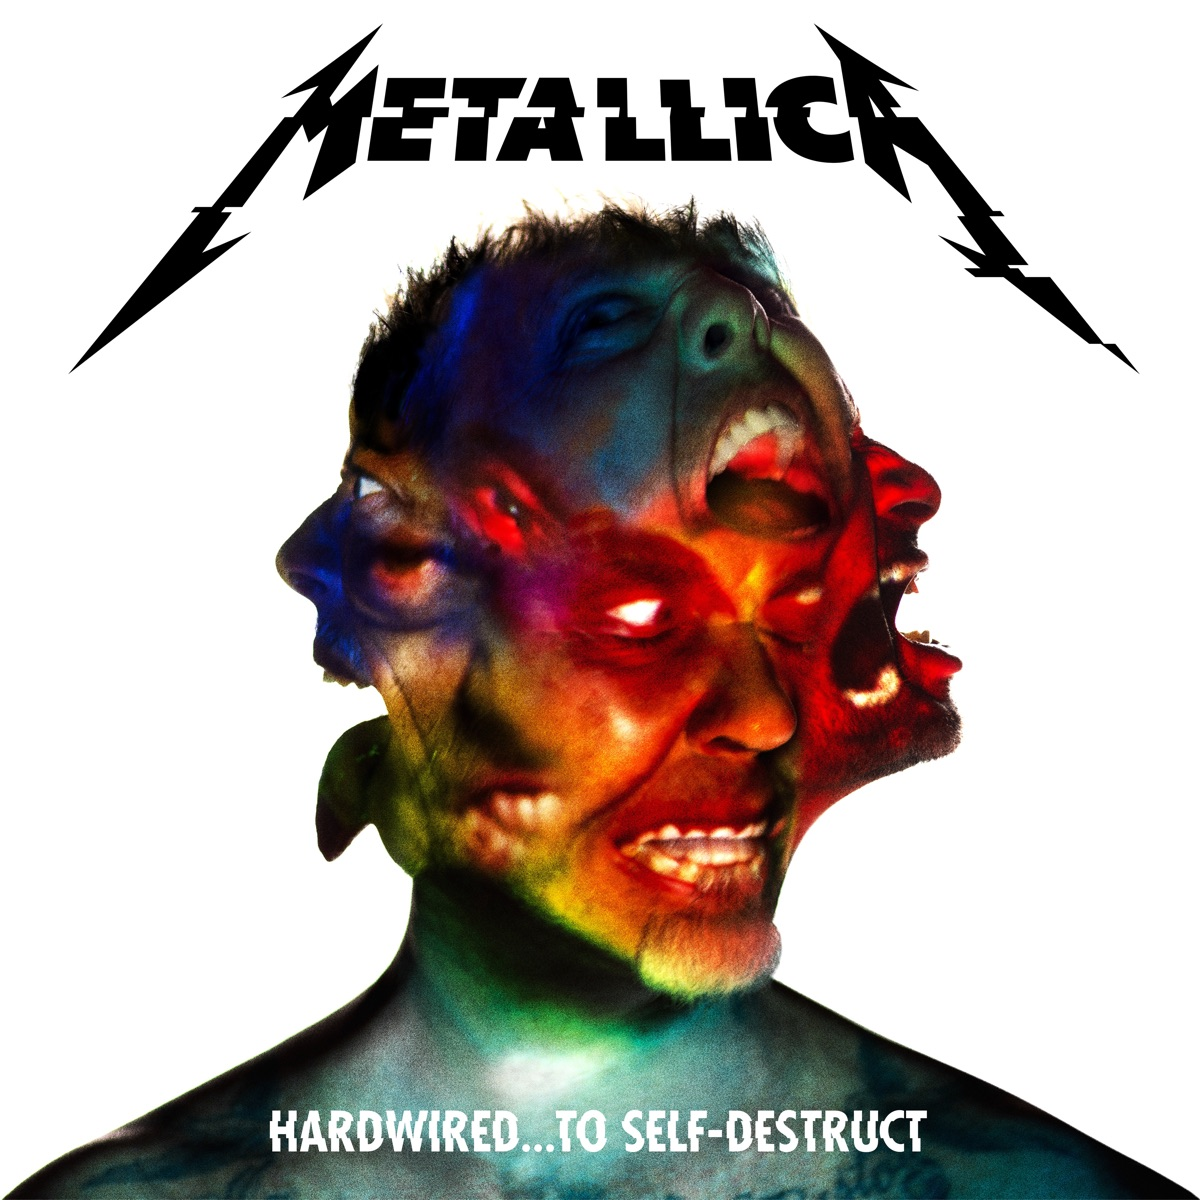 Hardwired…To Self-Destruct Deluxe Metallica CD cover